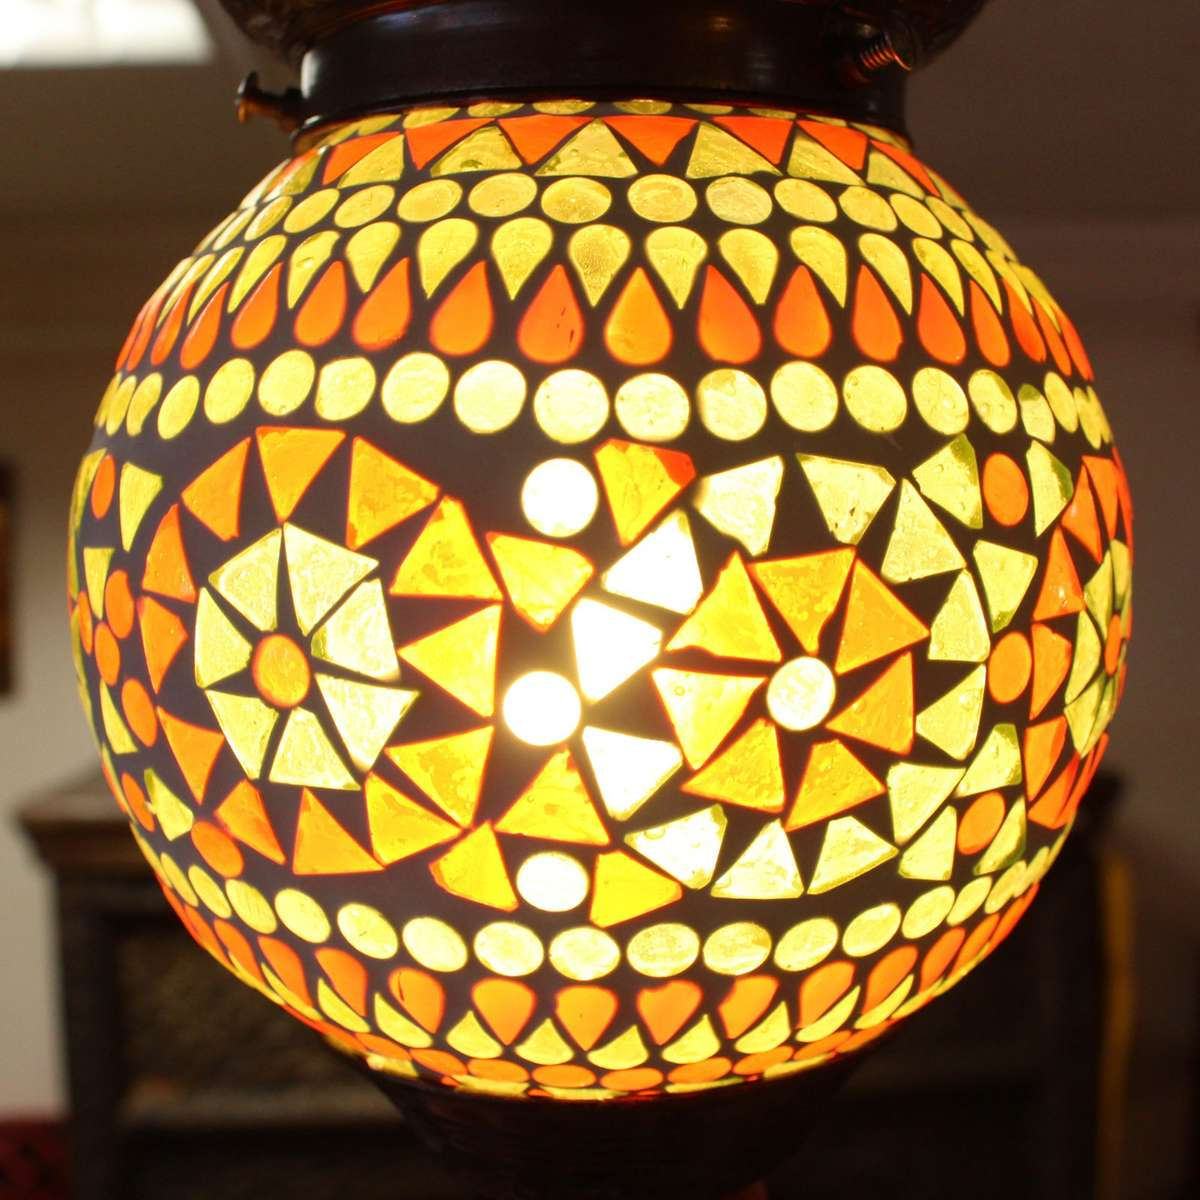 h nge mosaik lampen rund orientalisch dekoleuchte deckenleuchte leuchte gr n orange color 14 cm. Black Bedroom Furniture Sets. Home Design Ideas